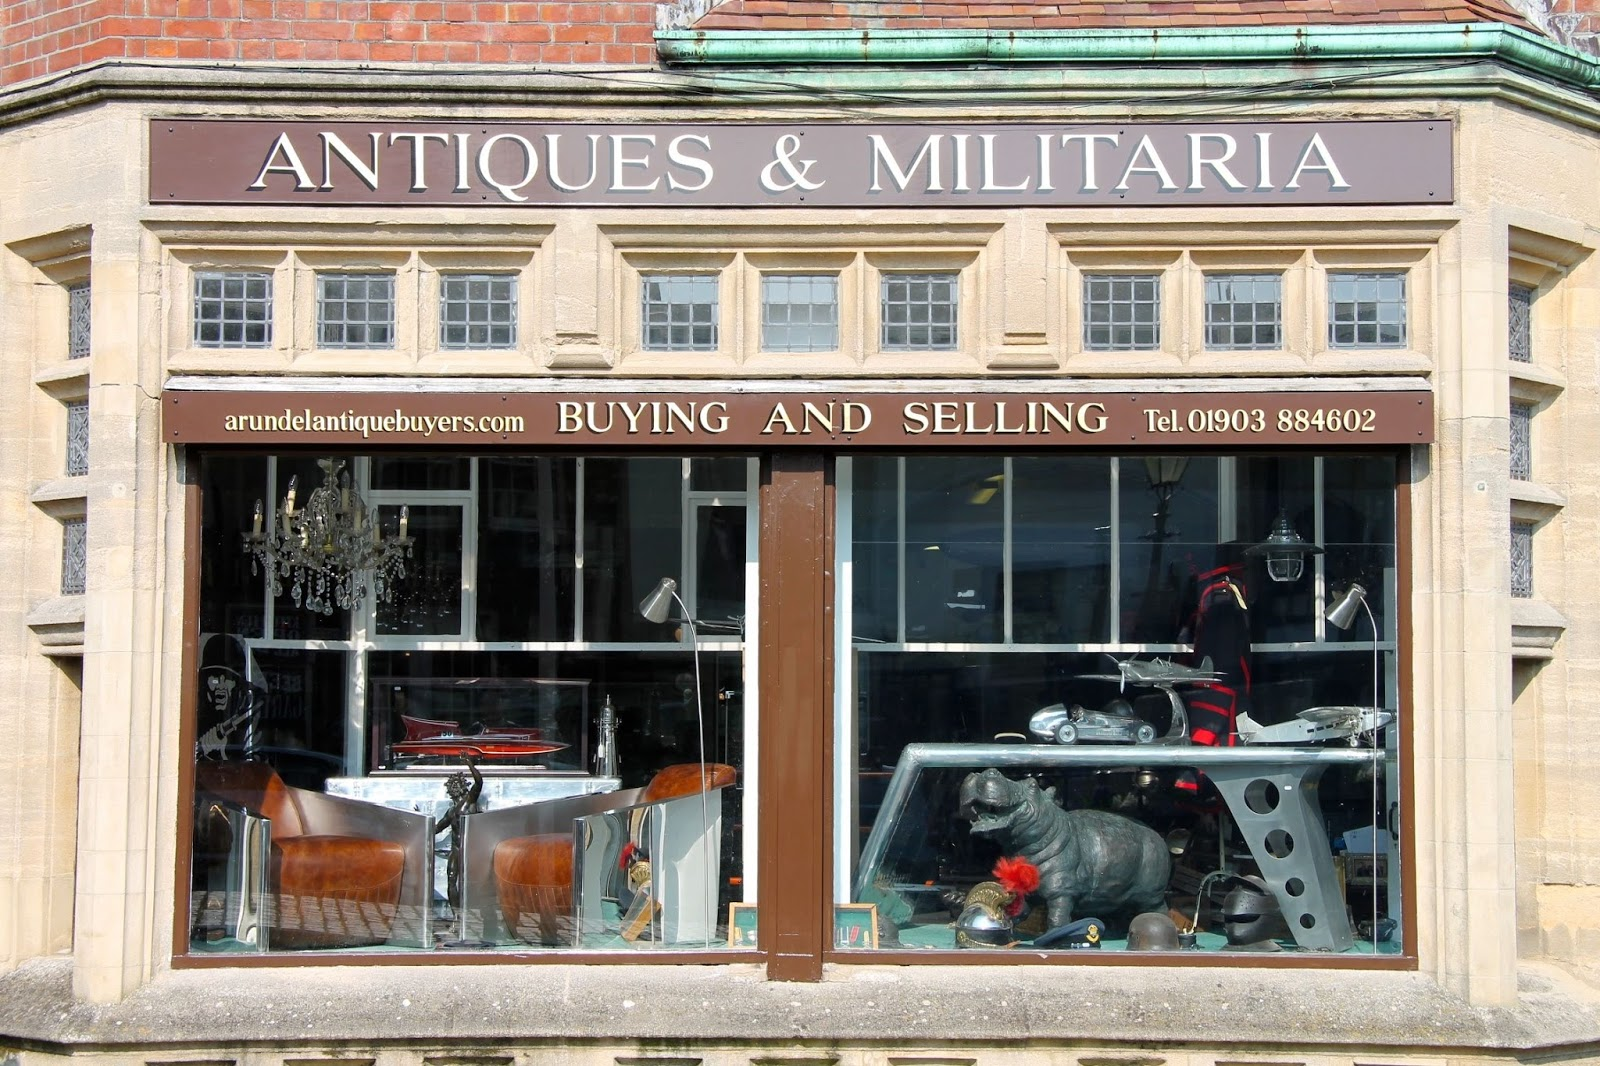 Antiques shop in Arundel